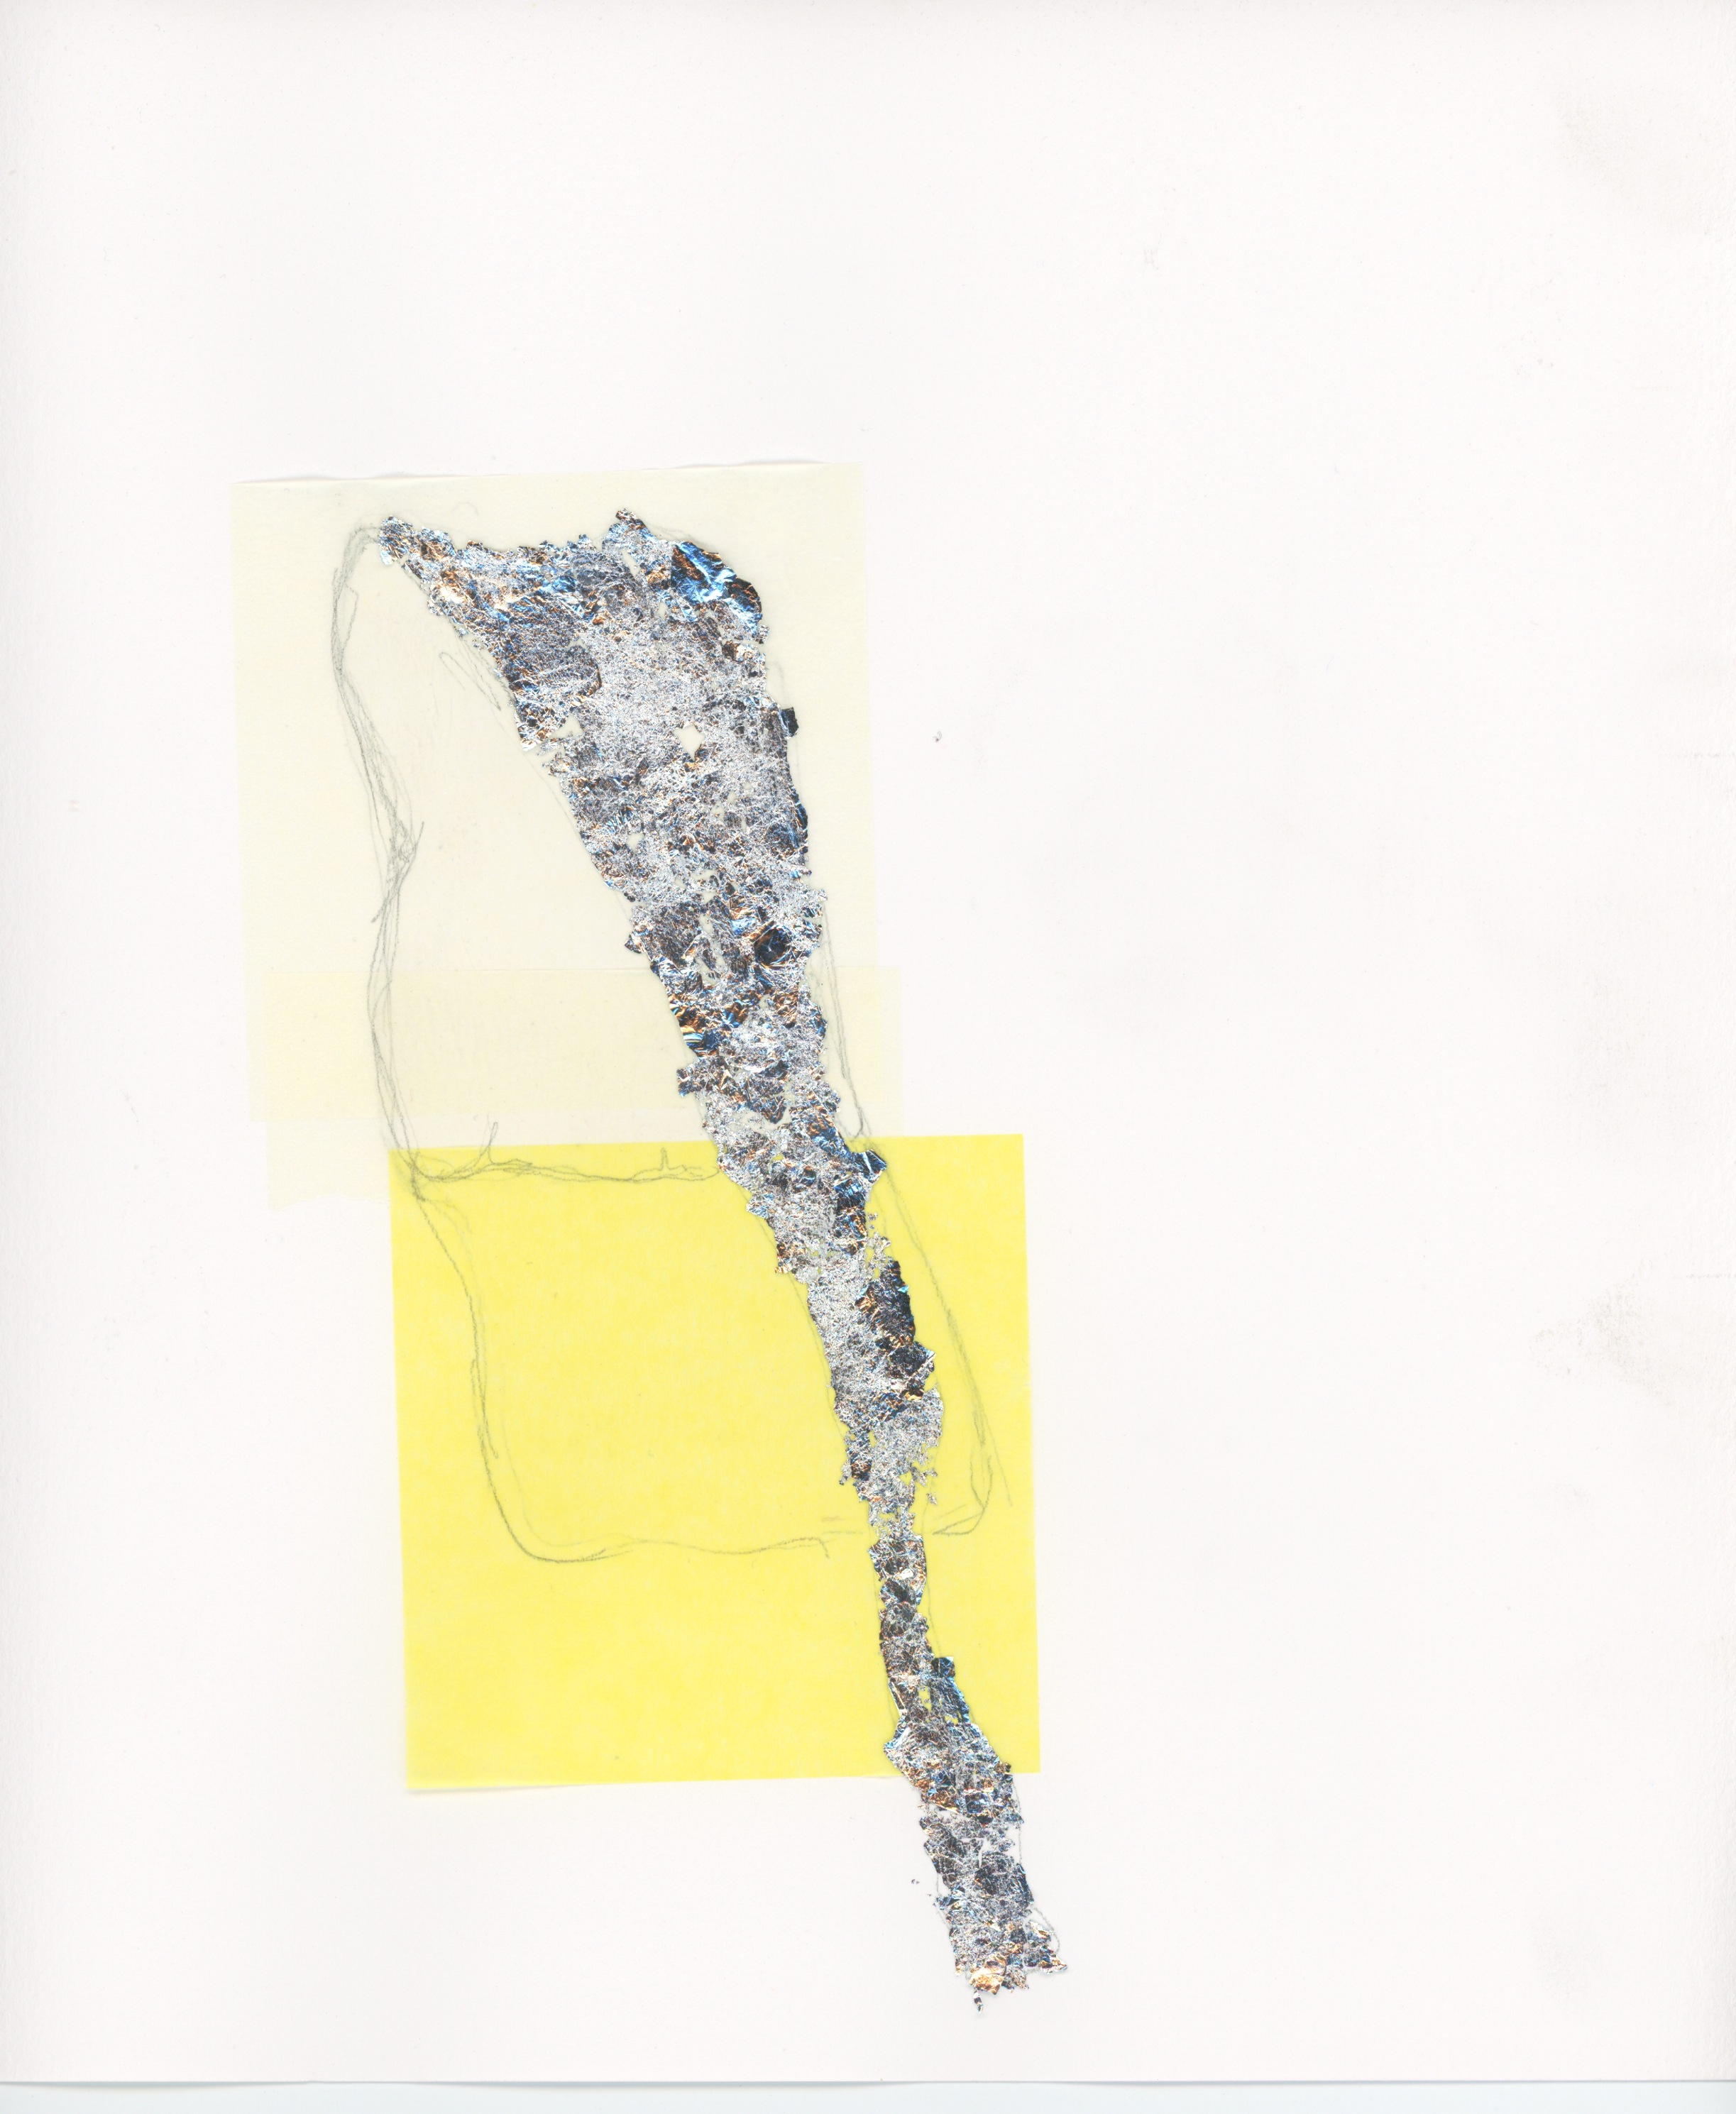 12. Tissue, gilding flakes and pencil on paper. 25 x 25cm